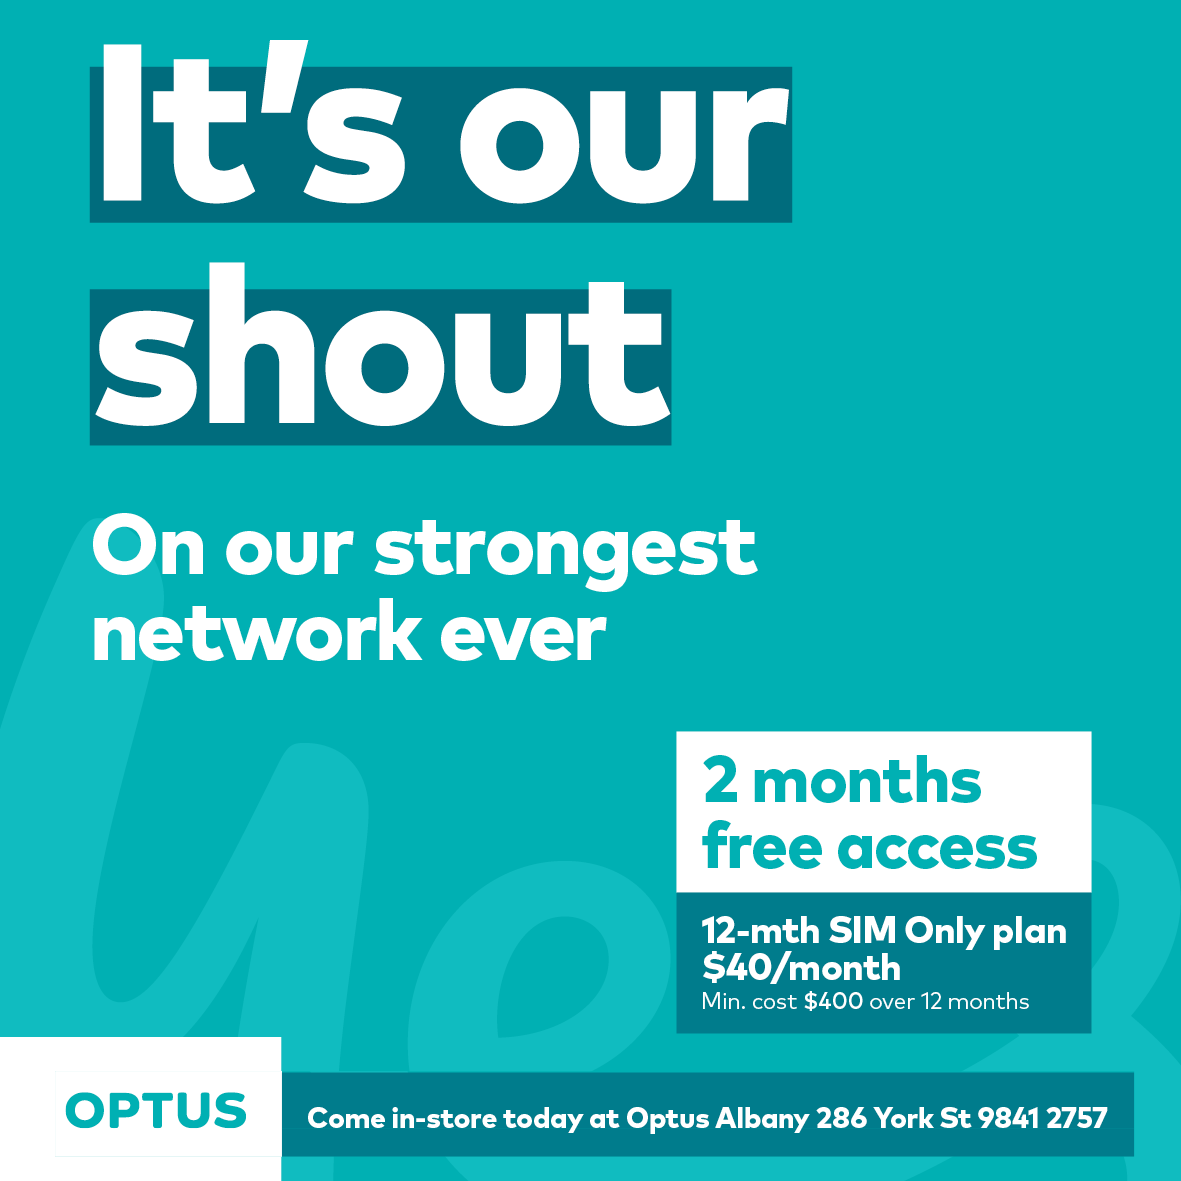 THERE IS NO BETTER TIME TO SWITCH TO OPTUS - Come in and see Kev and the team at Yes Optus Albany top of York St and try our 2 month free network offer. If you are not satisfied with our Network - for mobile network coverage reasons only - you can cancel anytime within the first two months and Optus will waive the cancellation fees.Download more information!